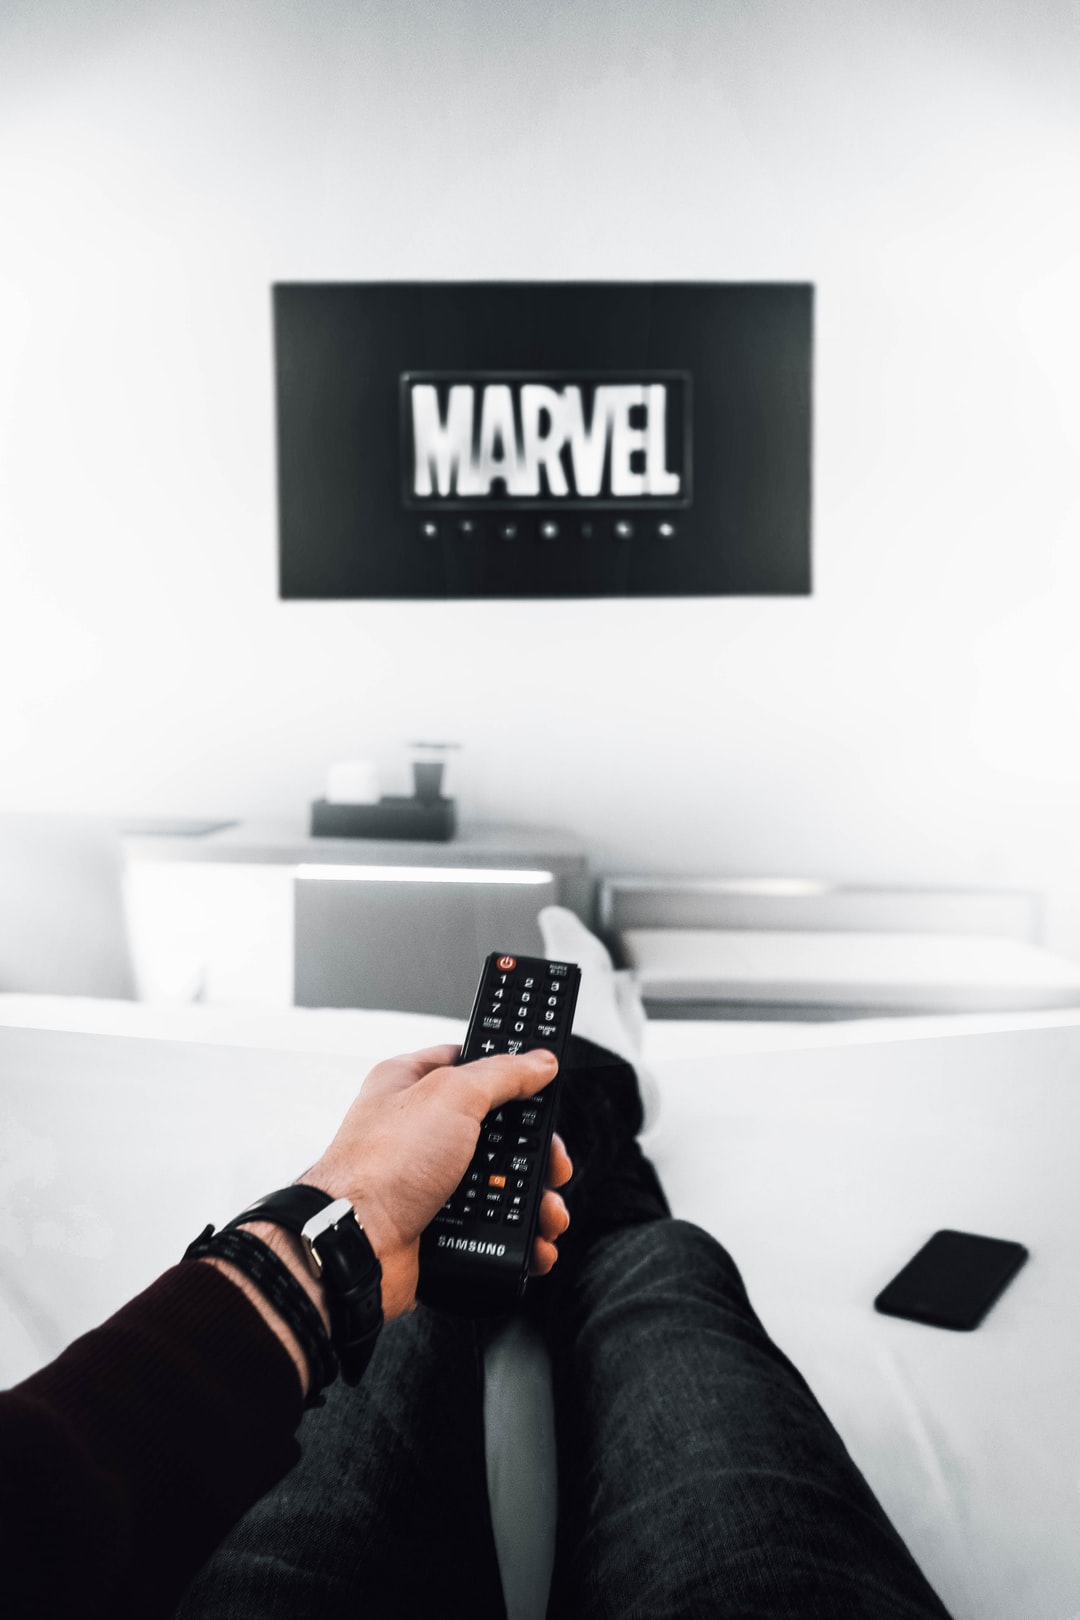 man holding remote control with Marvel logo on TV